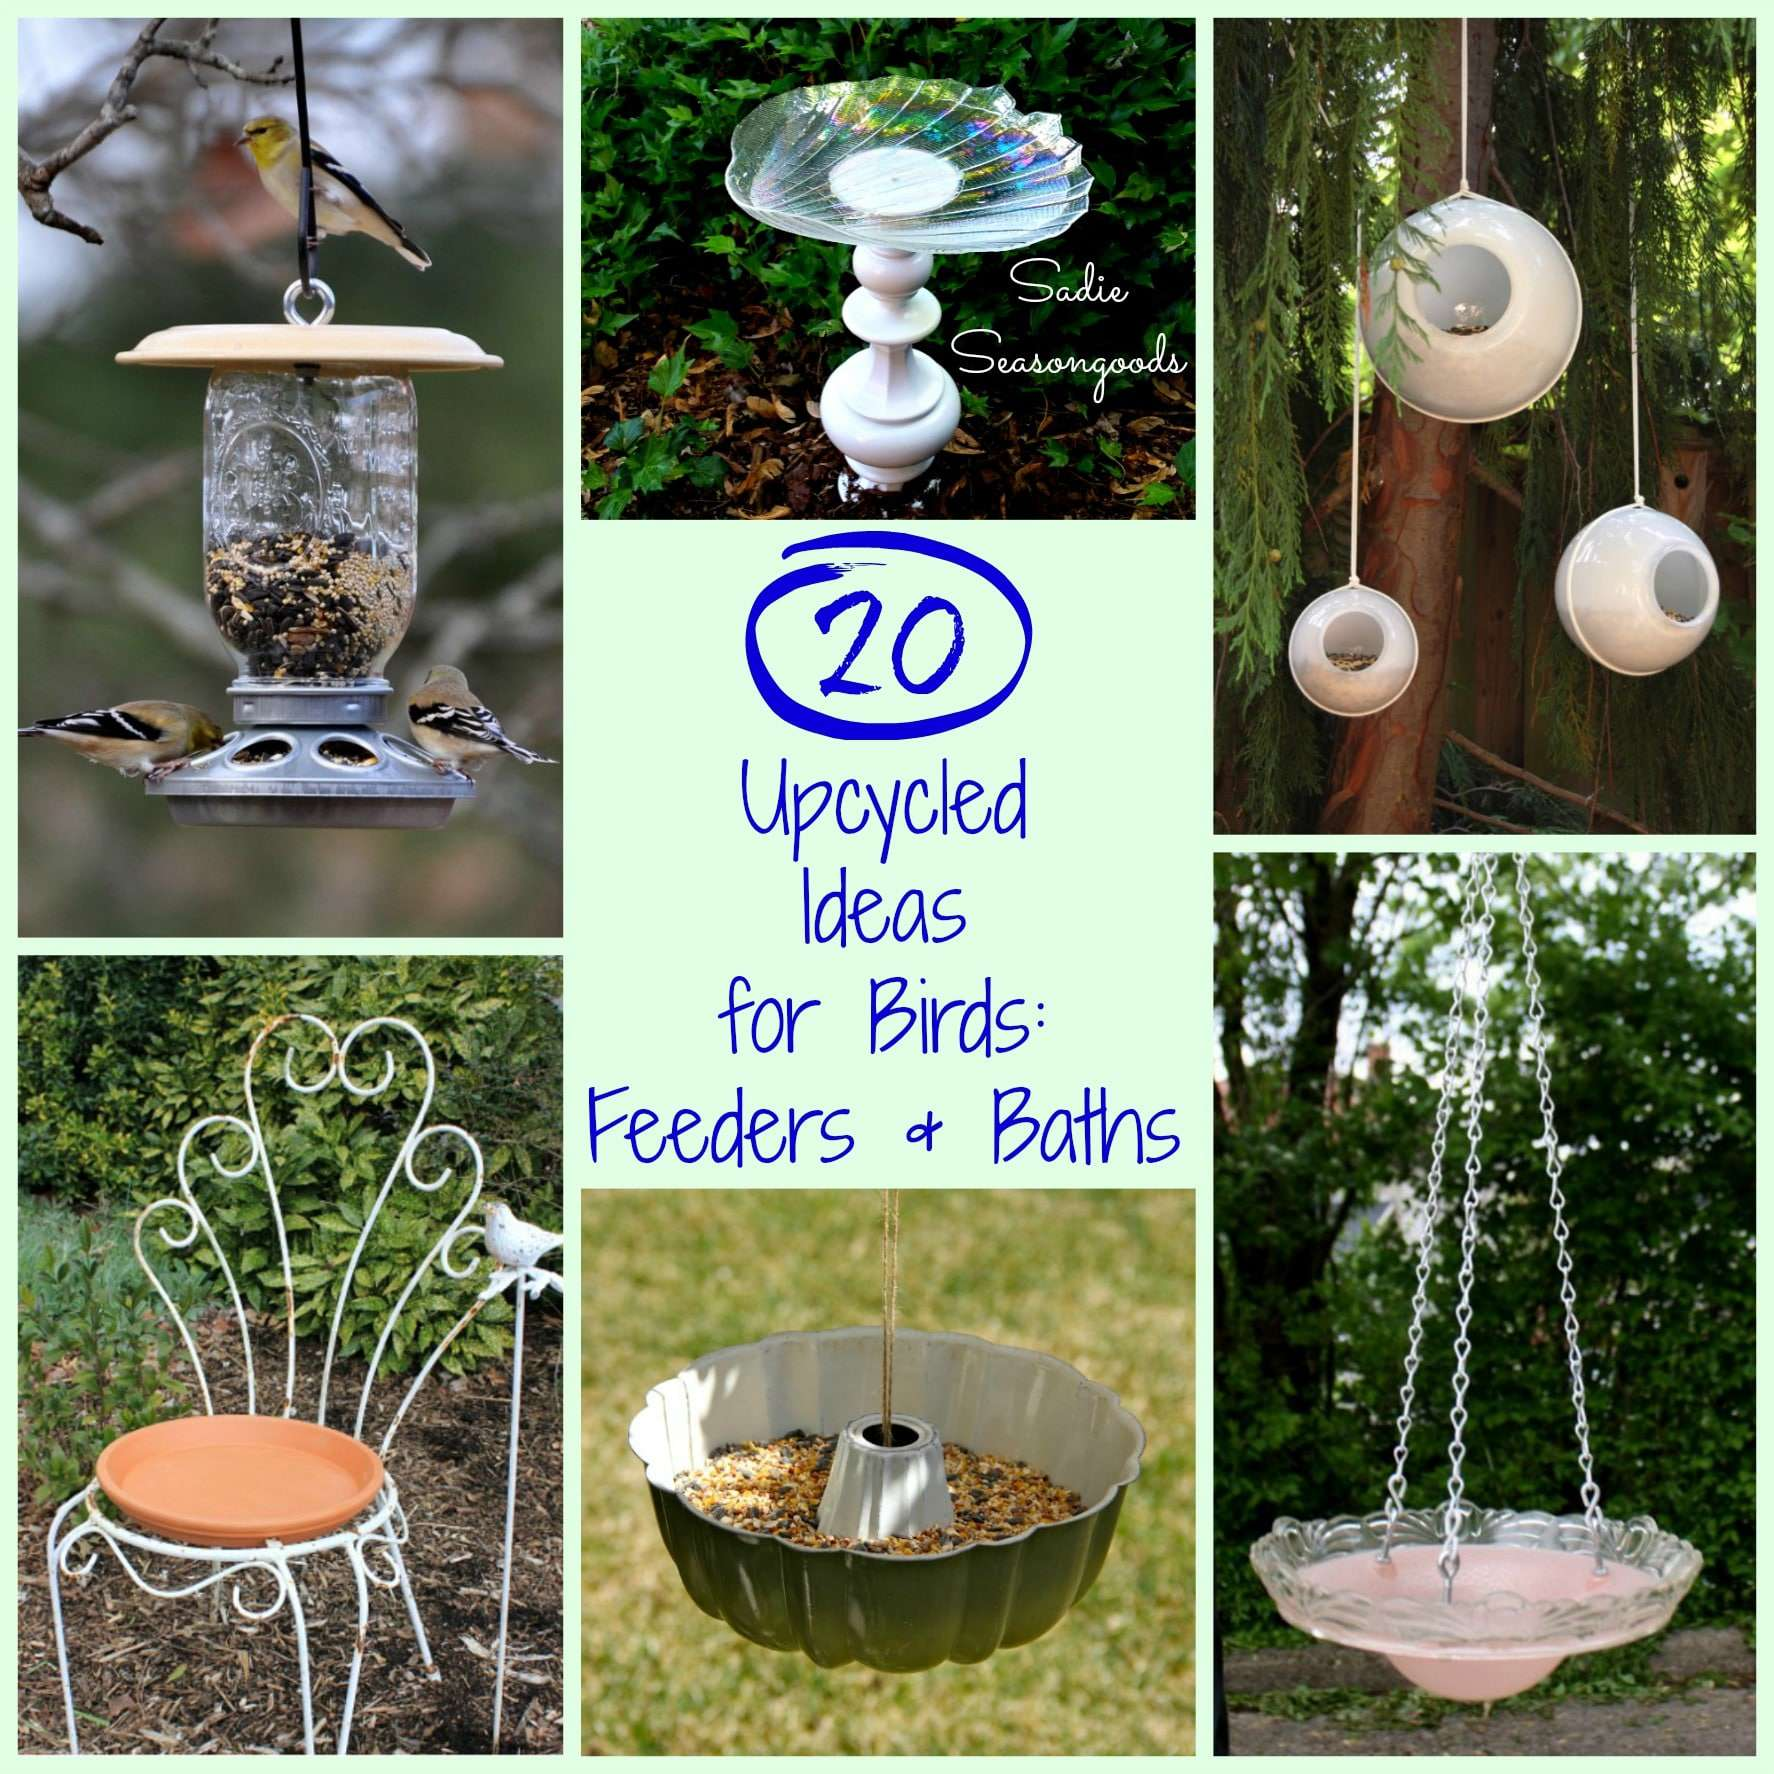 20 Upcycling Ideas For Bird Feeders And Birdbaths